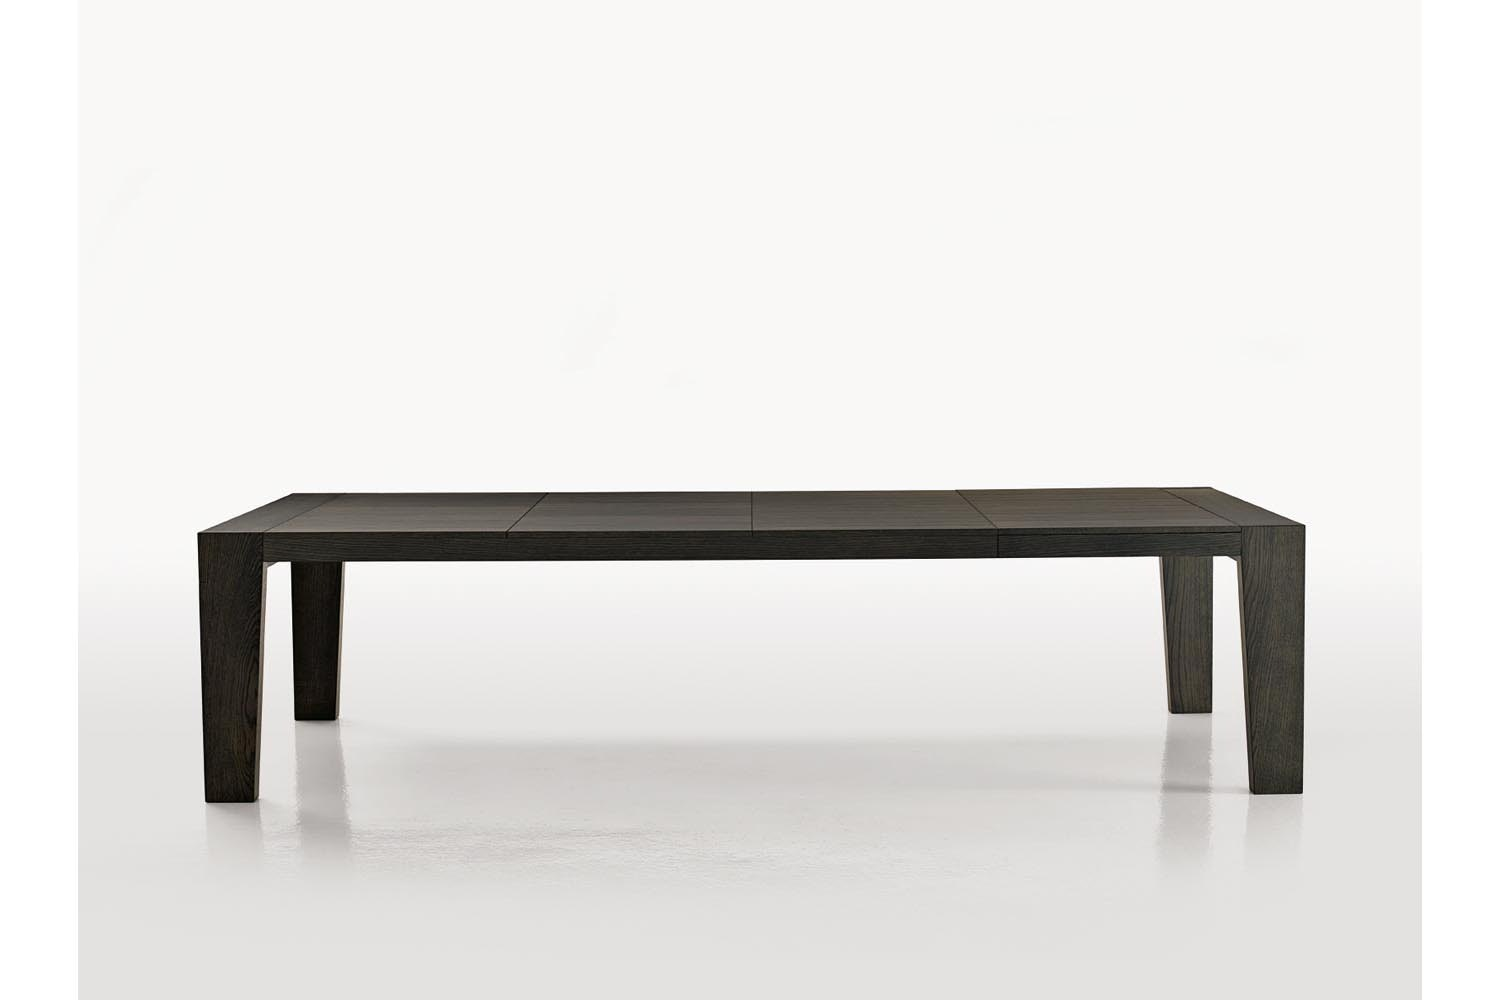 Omero Extension Table by Antonio Citterio for Maxalto